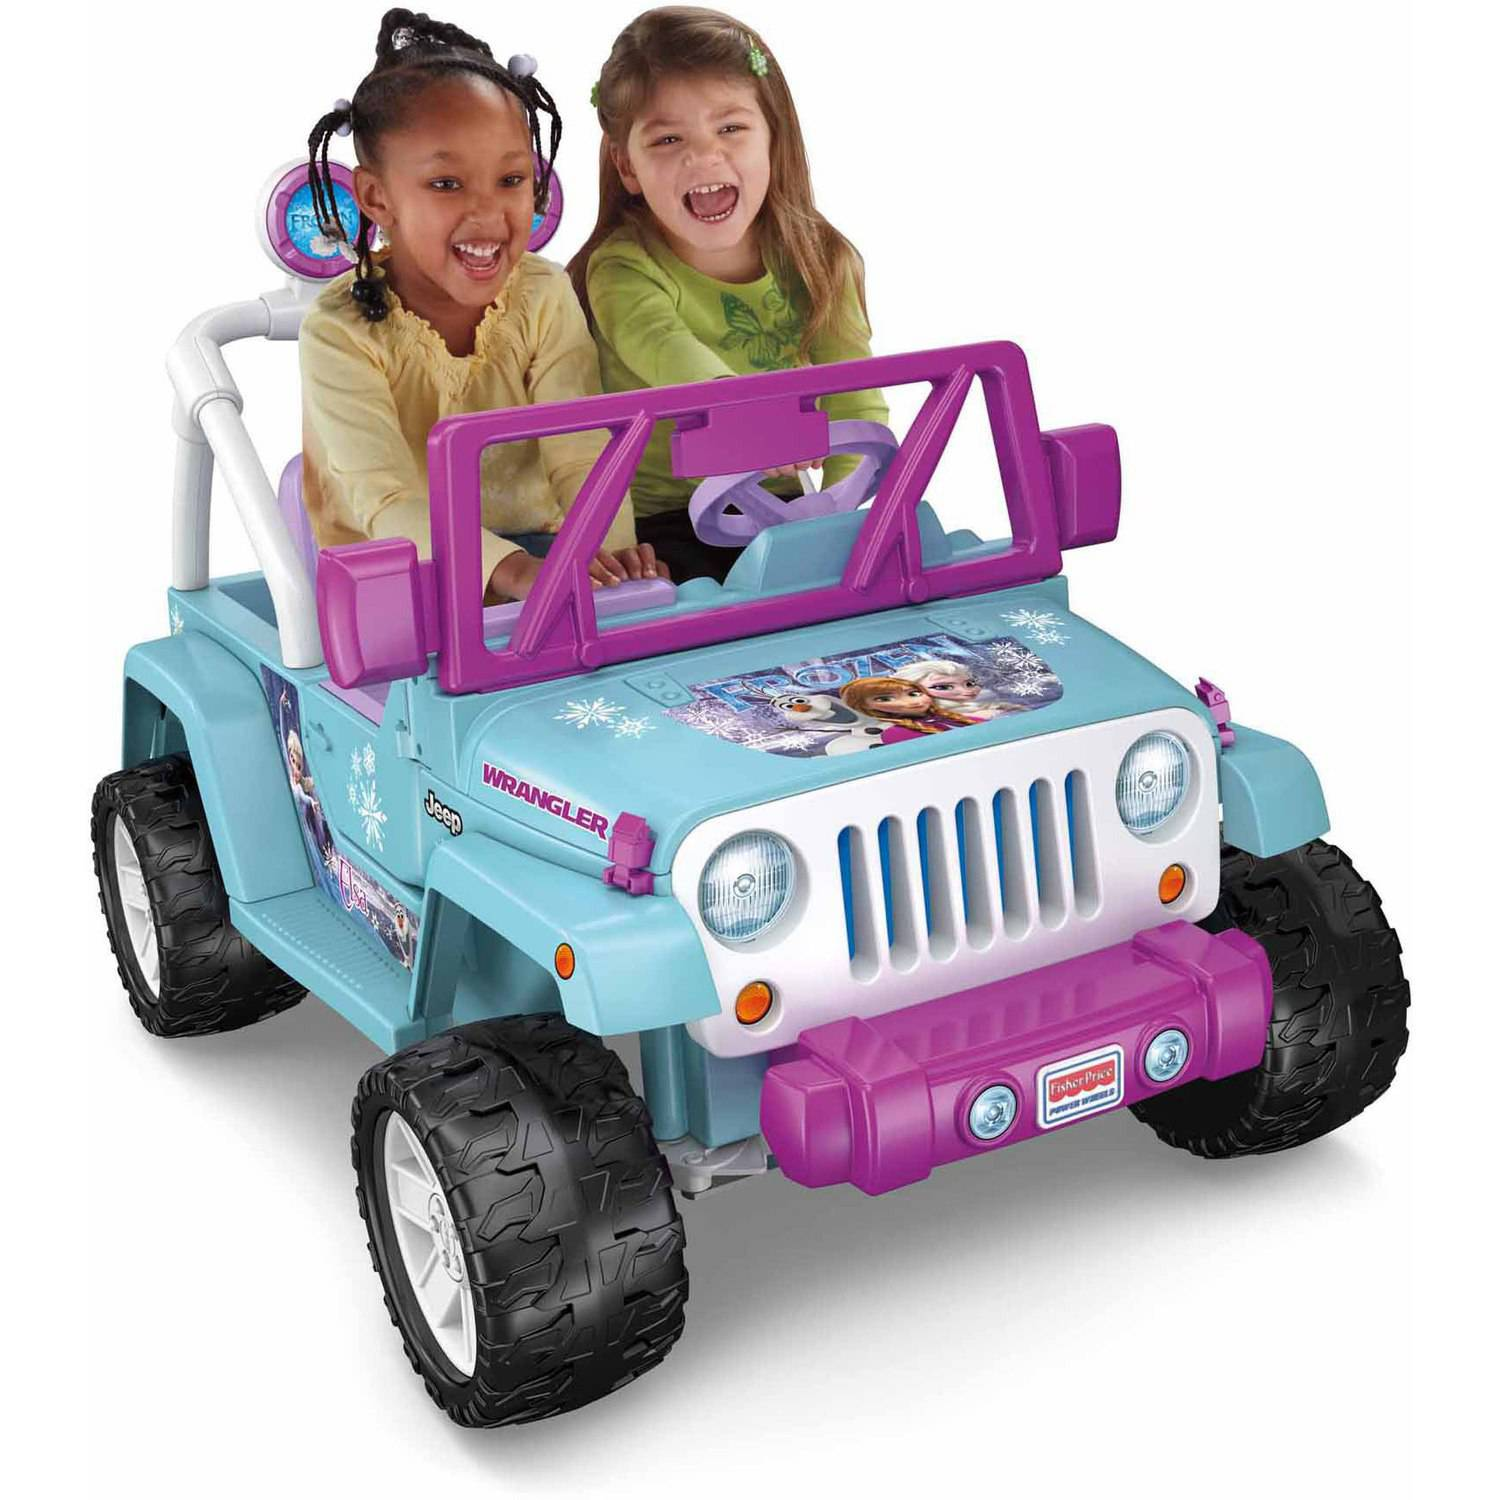 Power Wheels Disney Frozen Jeep Wrangler 12-Volt Battery-Powered Ride-On